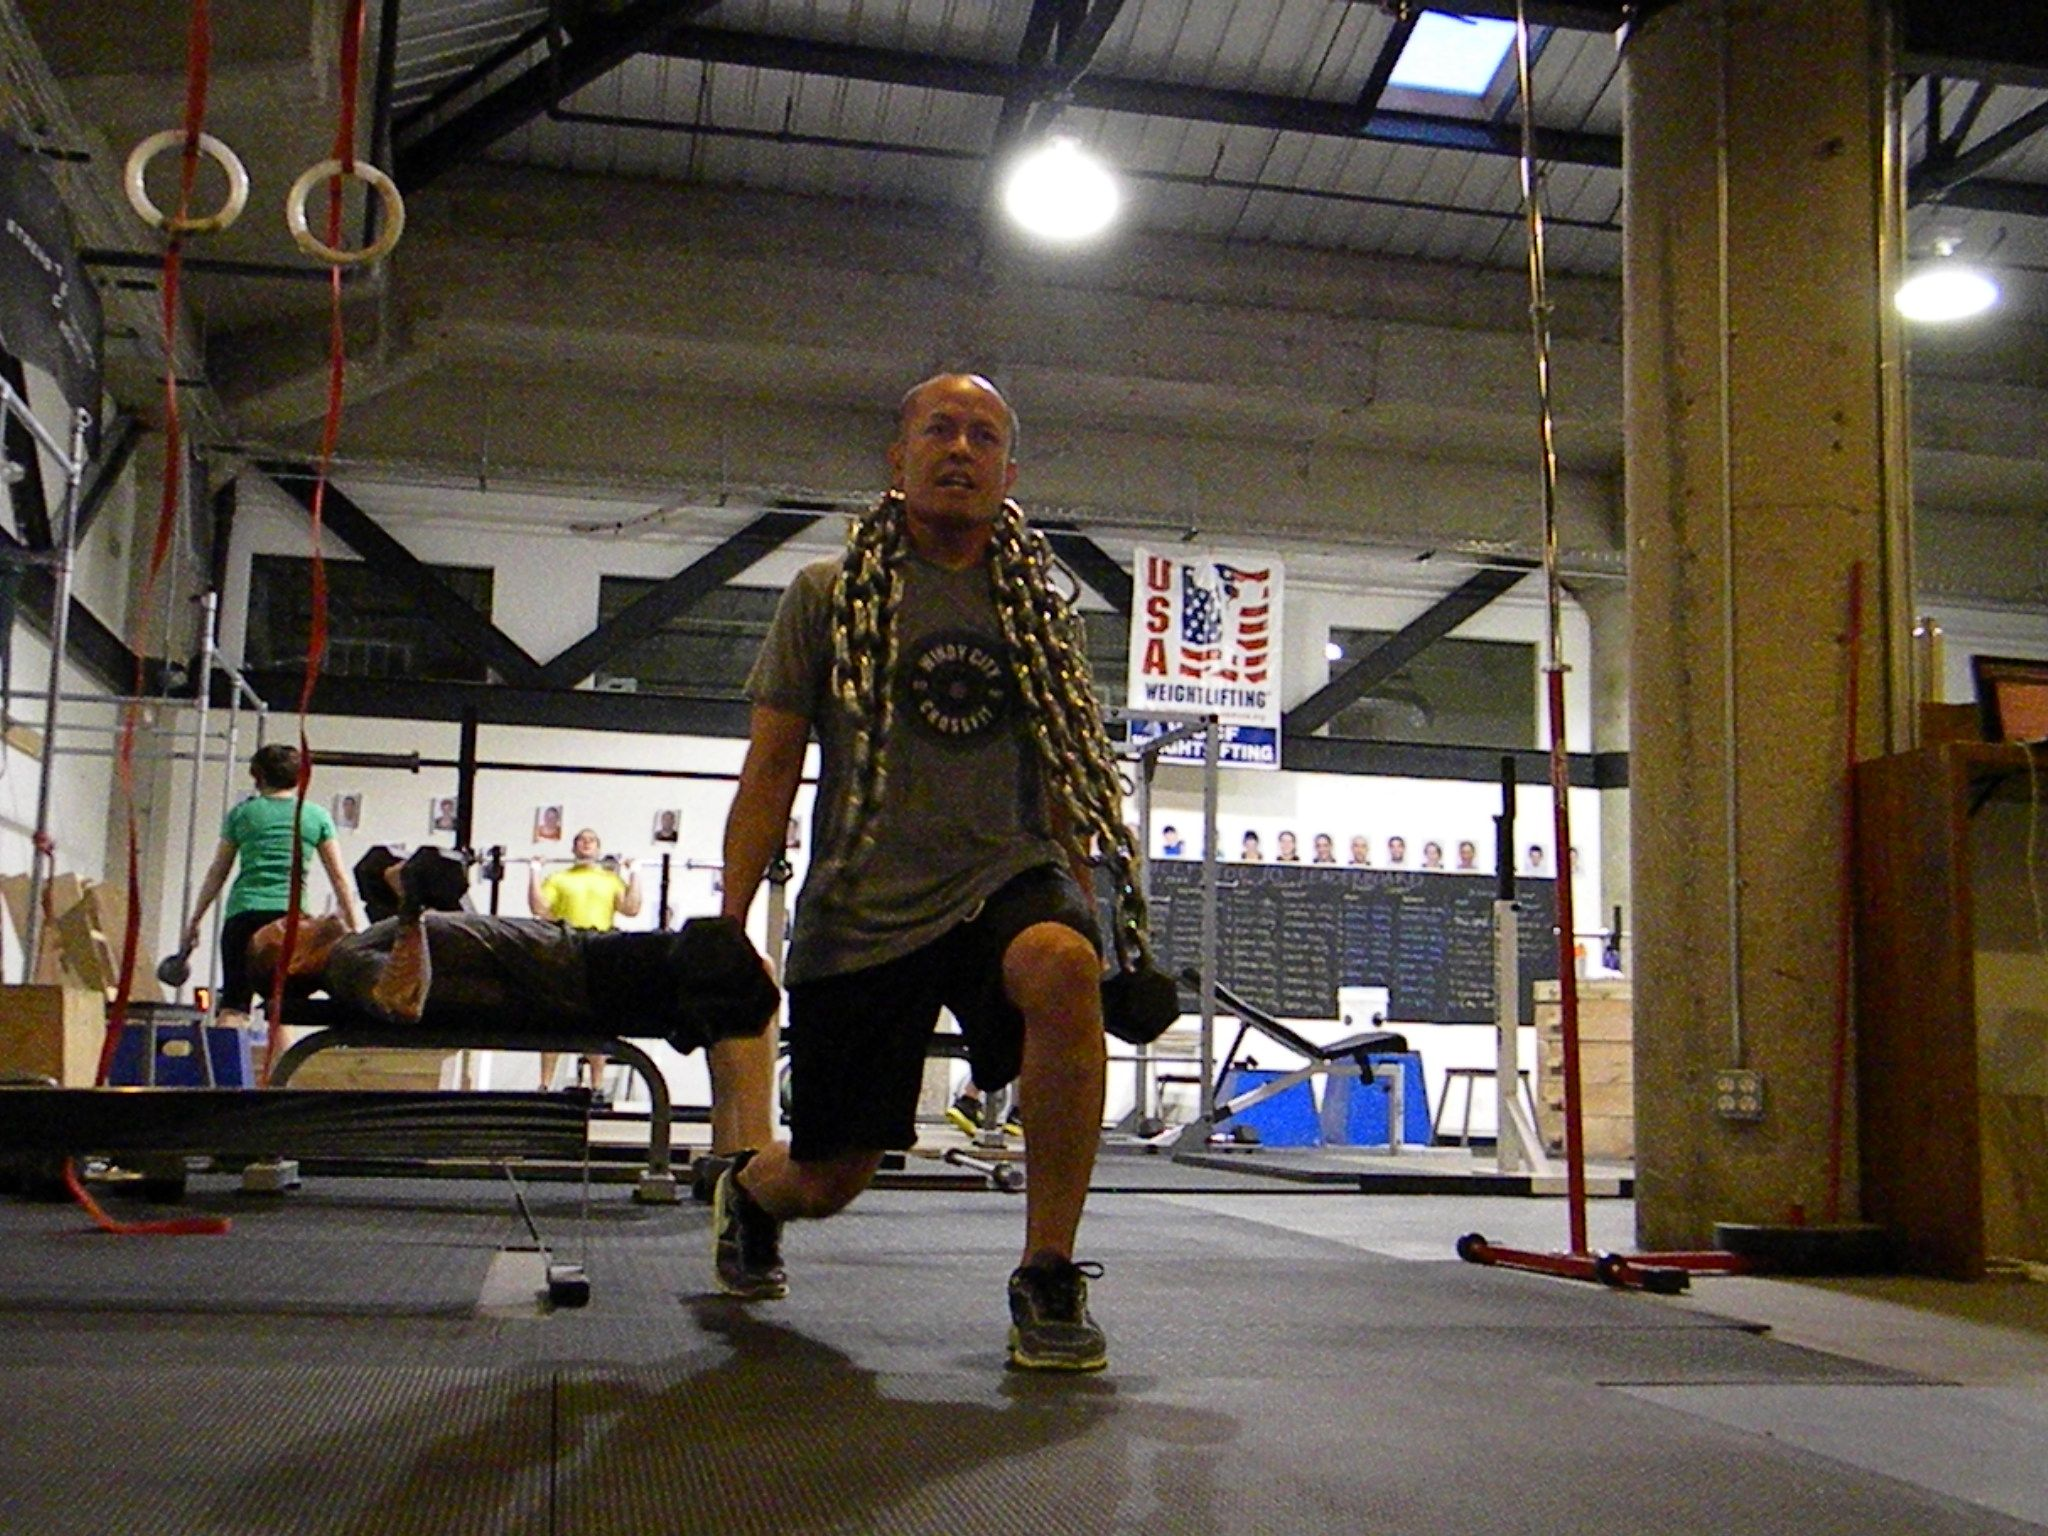 lunge with chains